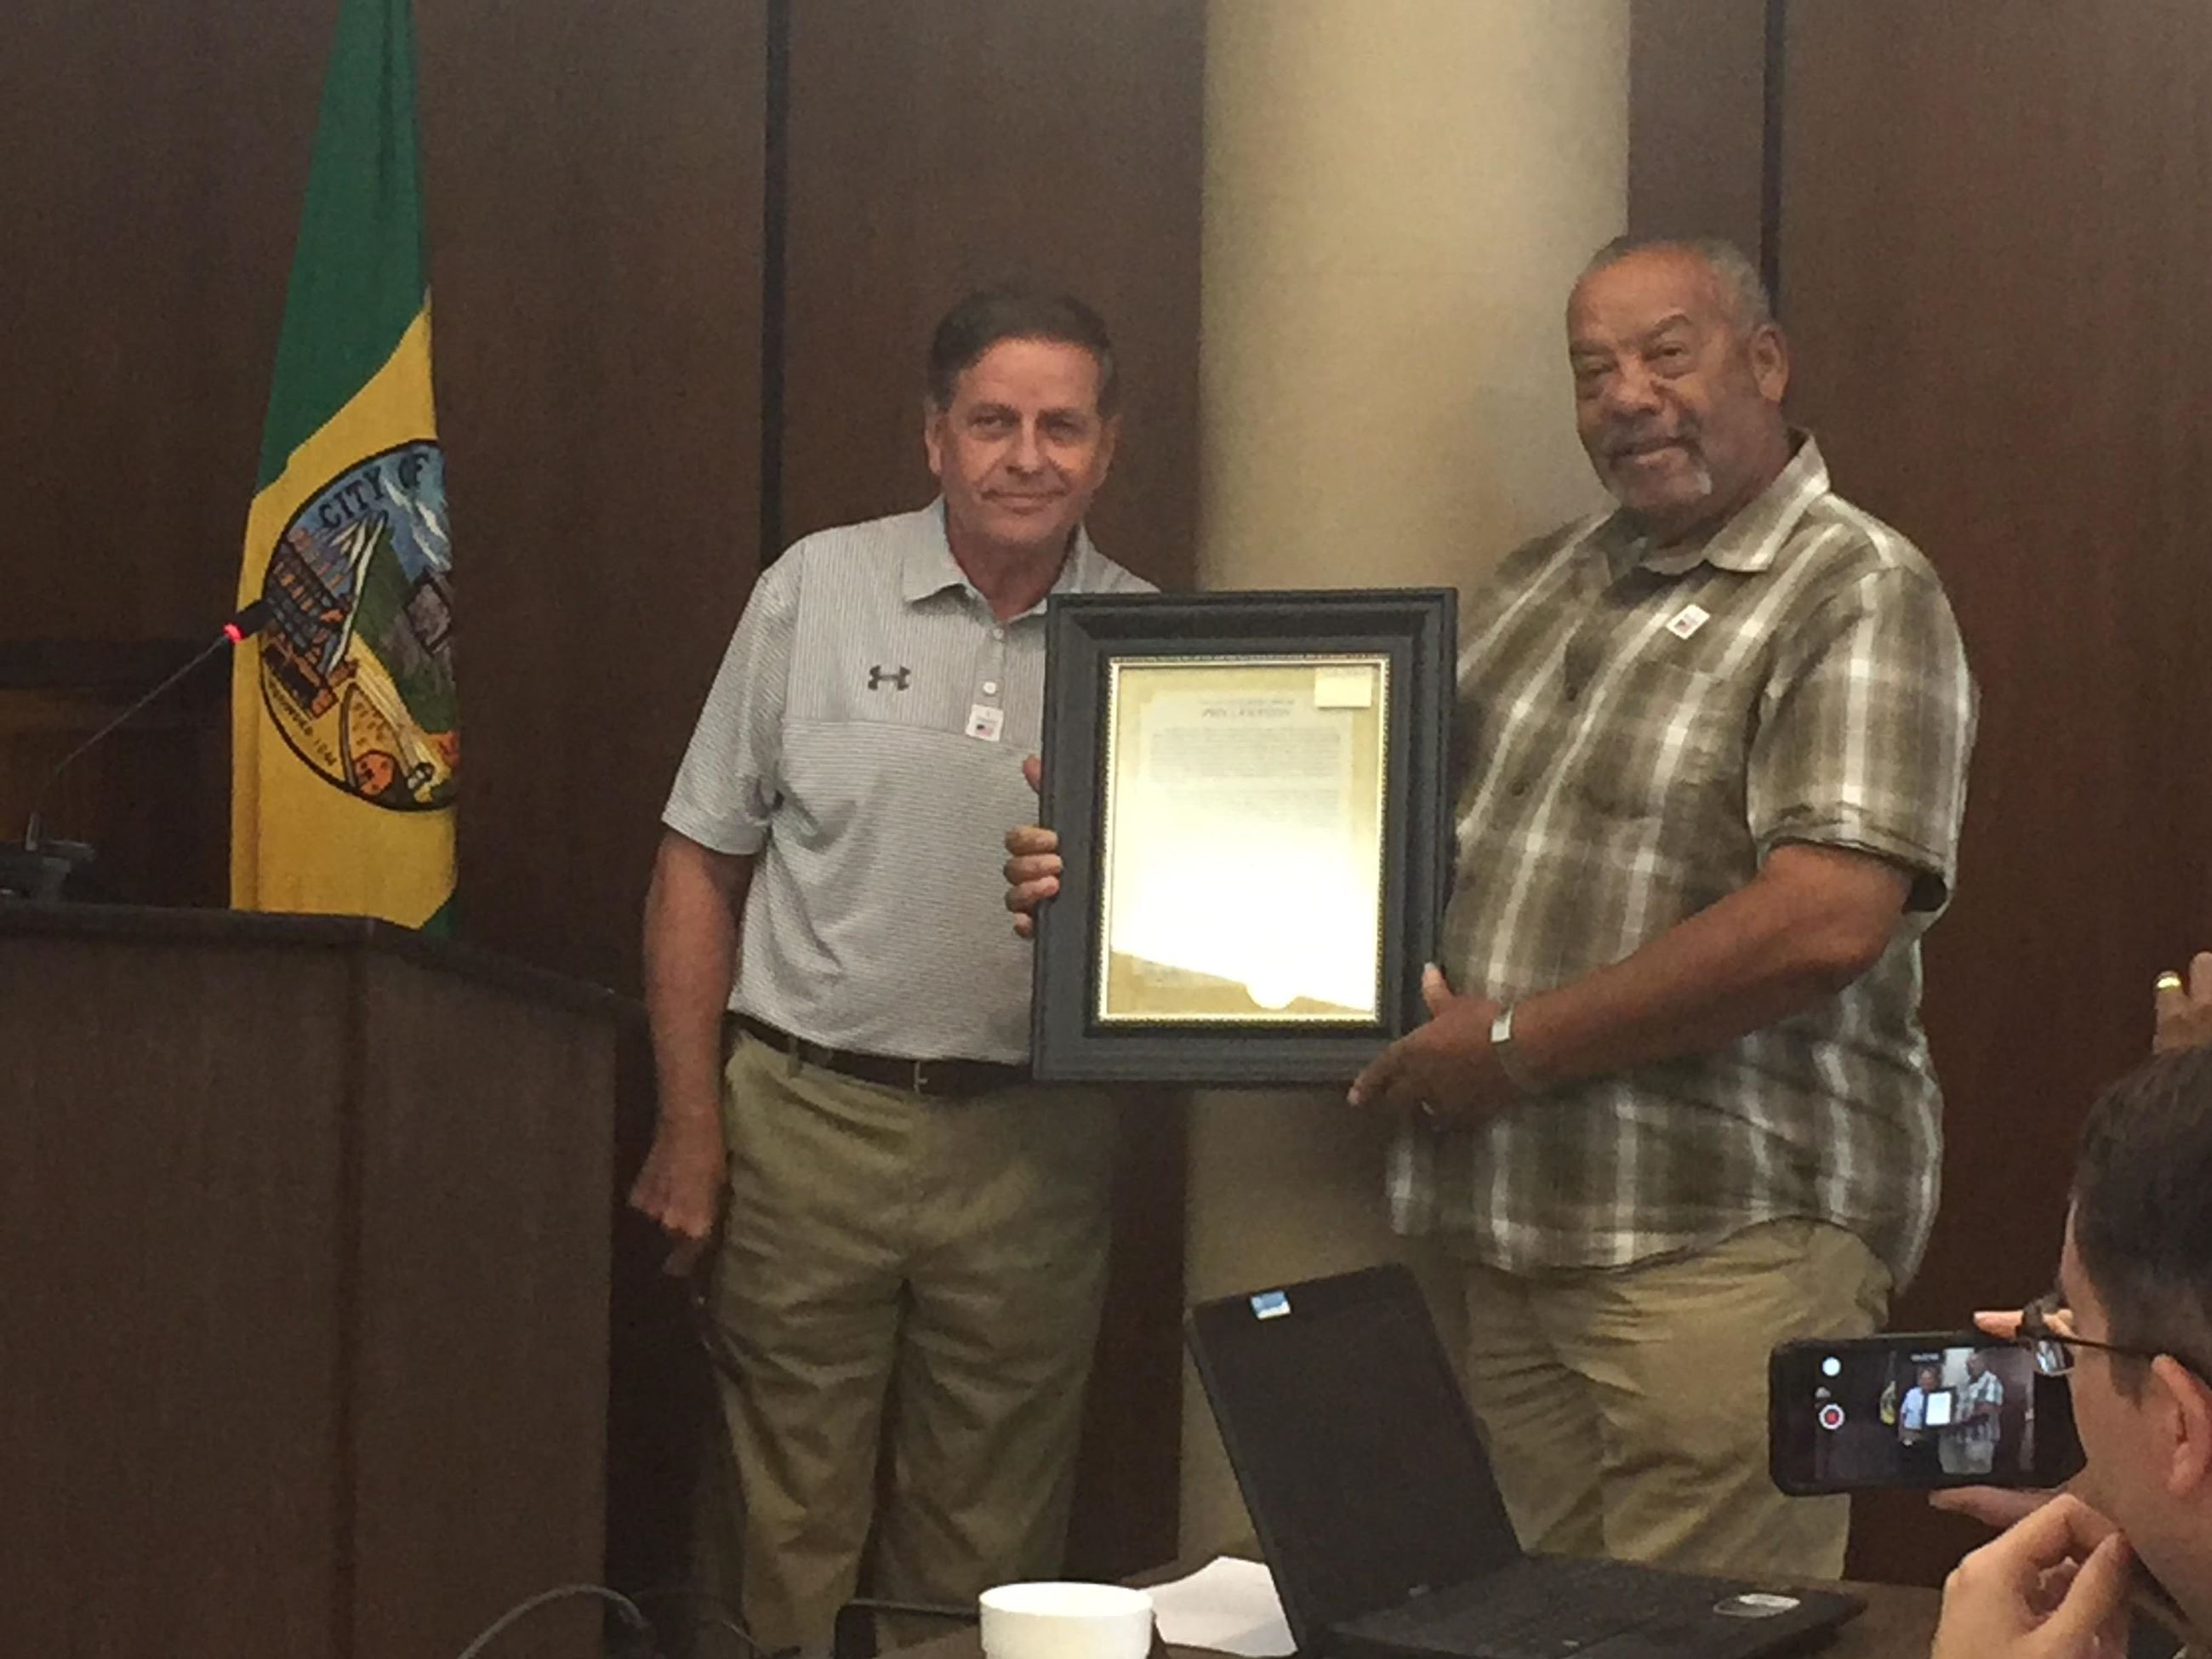 Buster Porch receives his Quality of Life proclamation from Mayor Sherman Guyton.